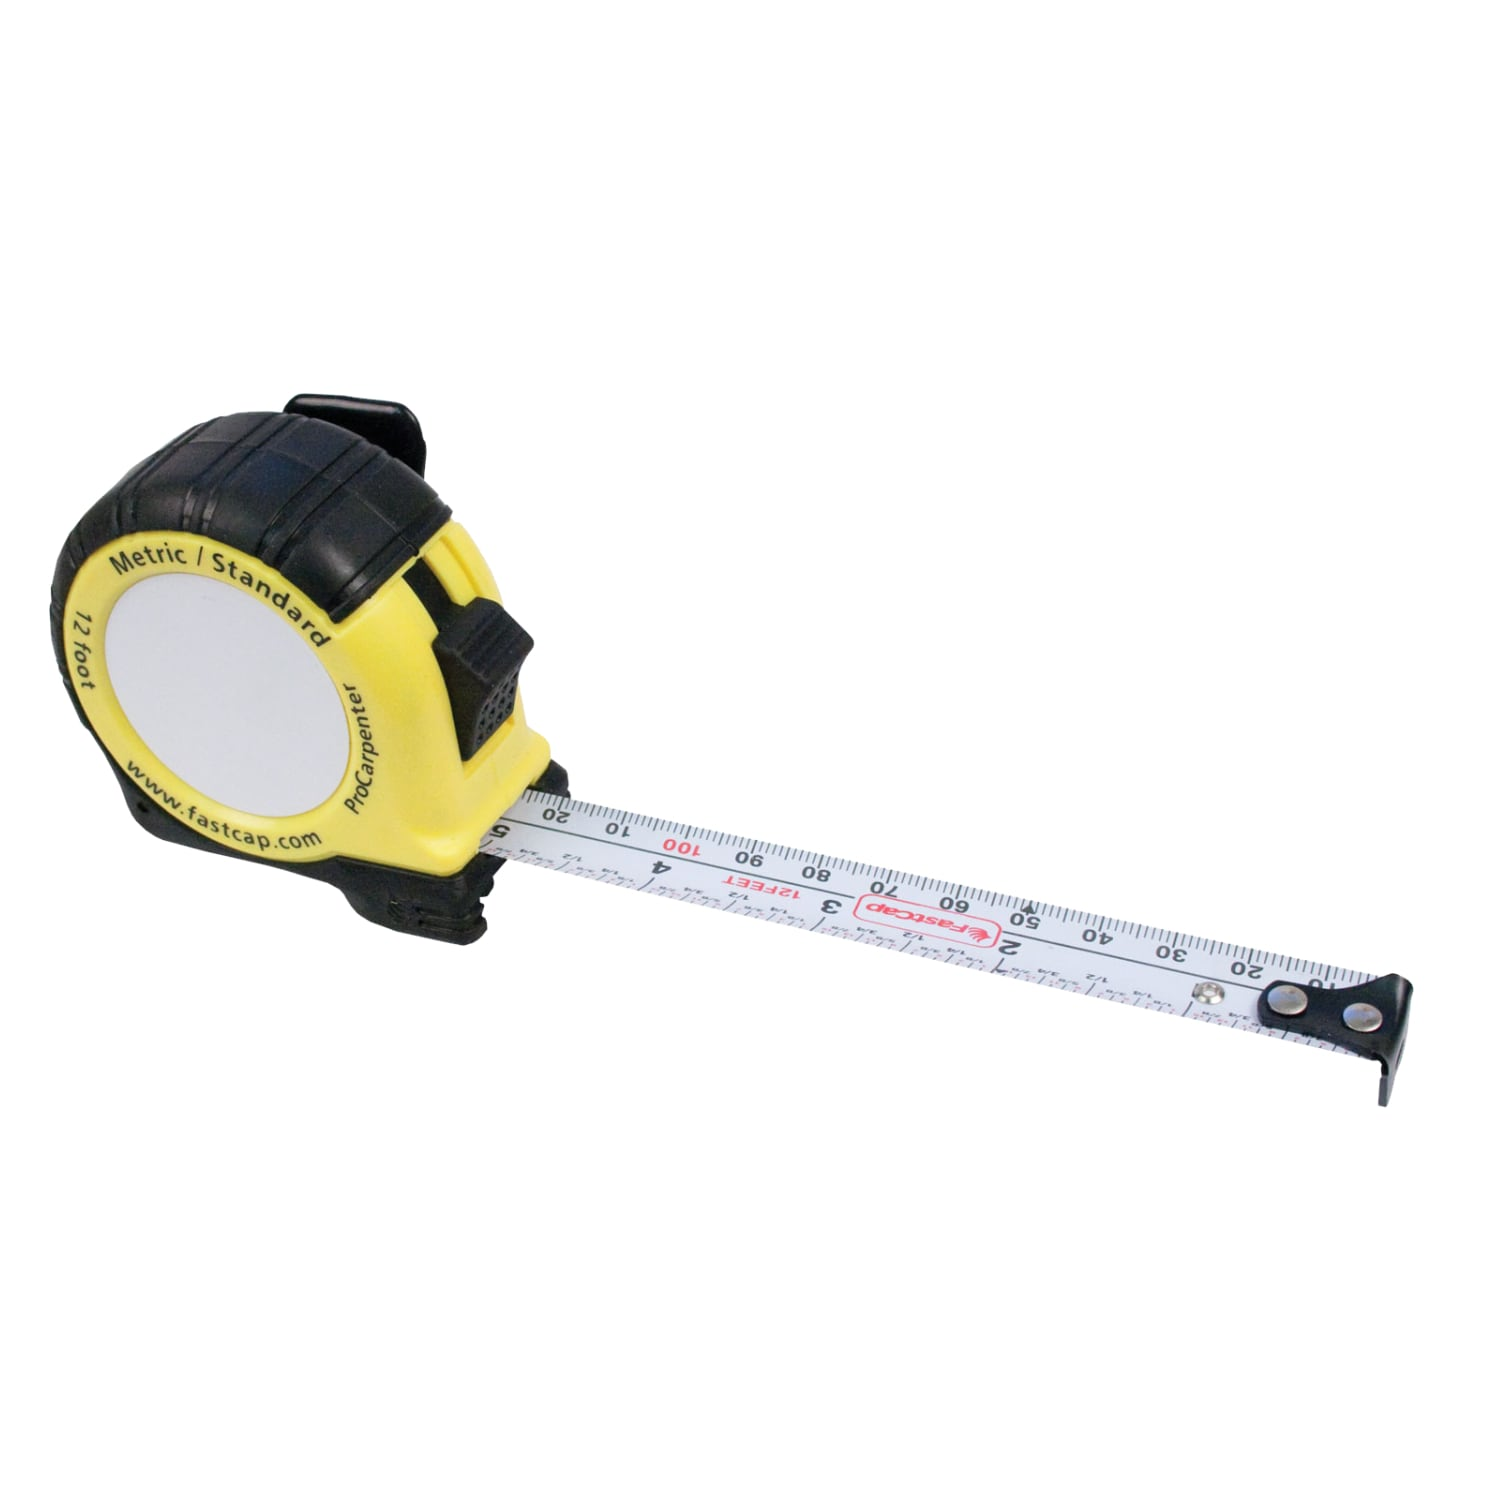 Fastcap 12 Foot Metric Standard Procarpenter Measuring